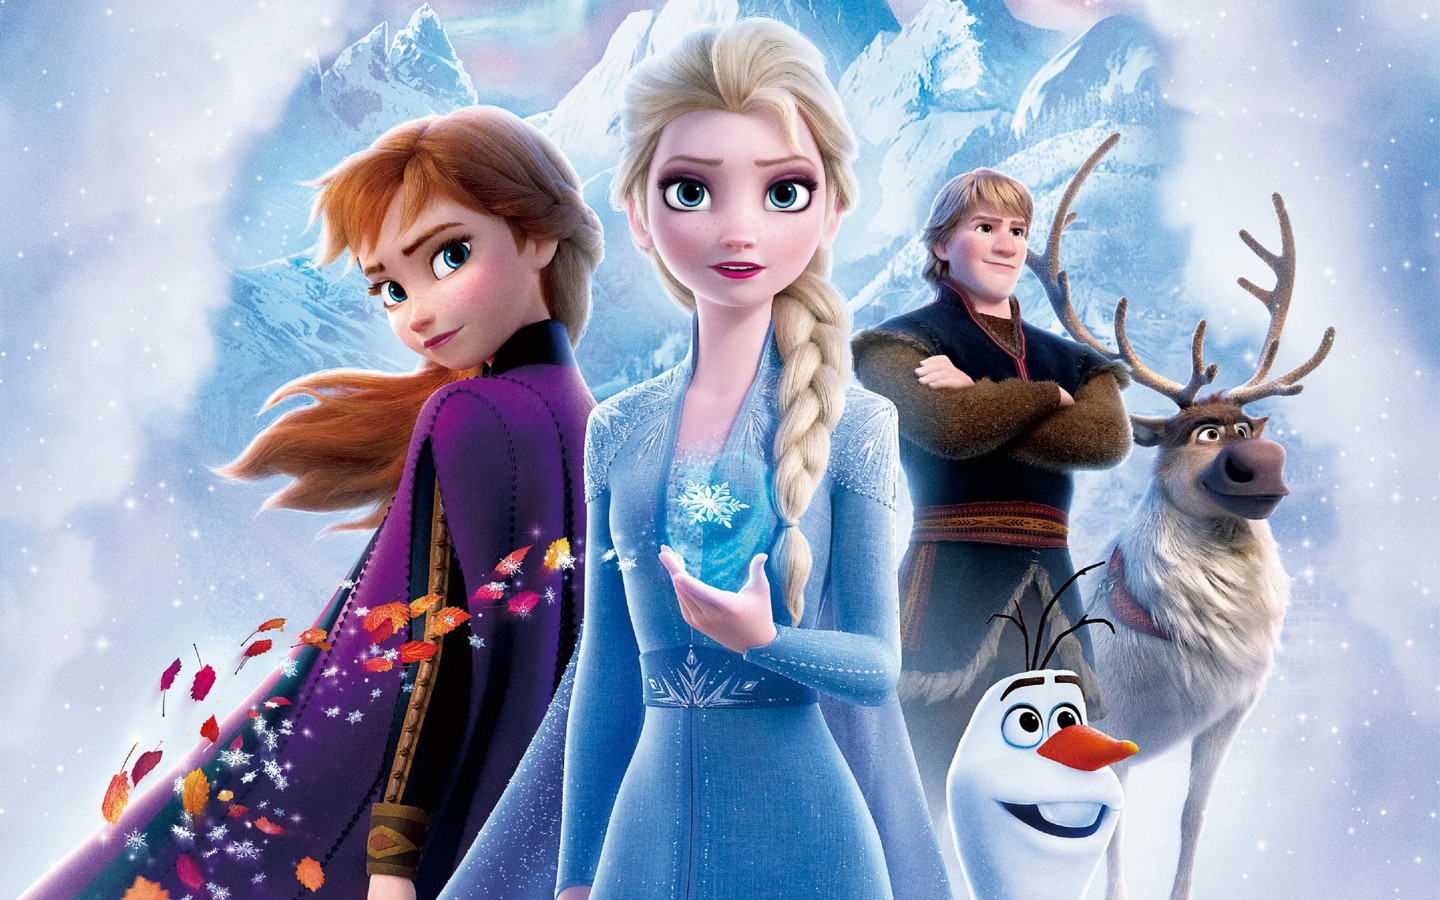 Frozen 2 wallpaper 1440x900